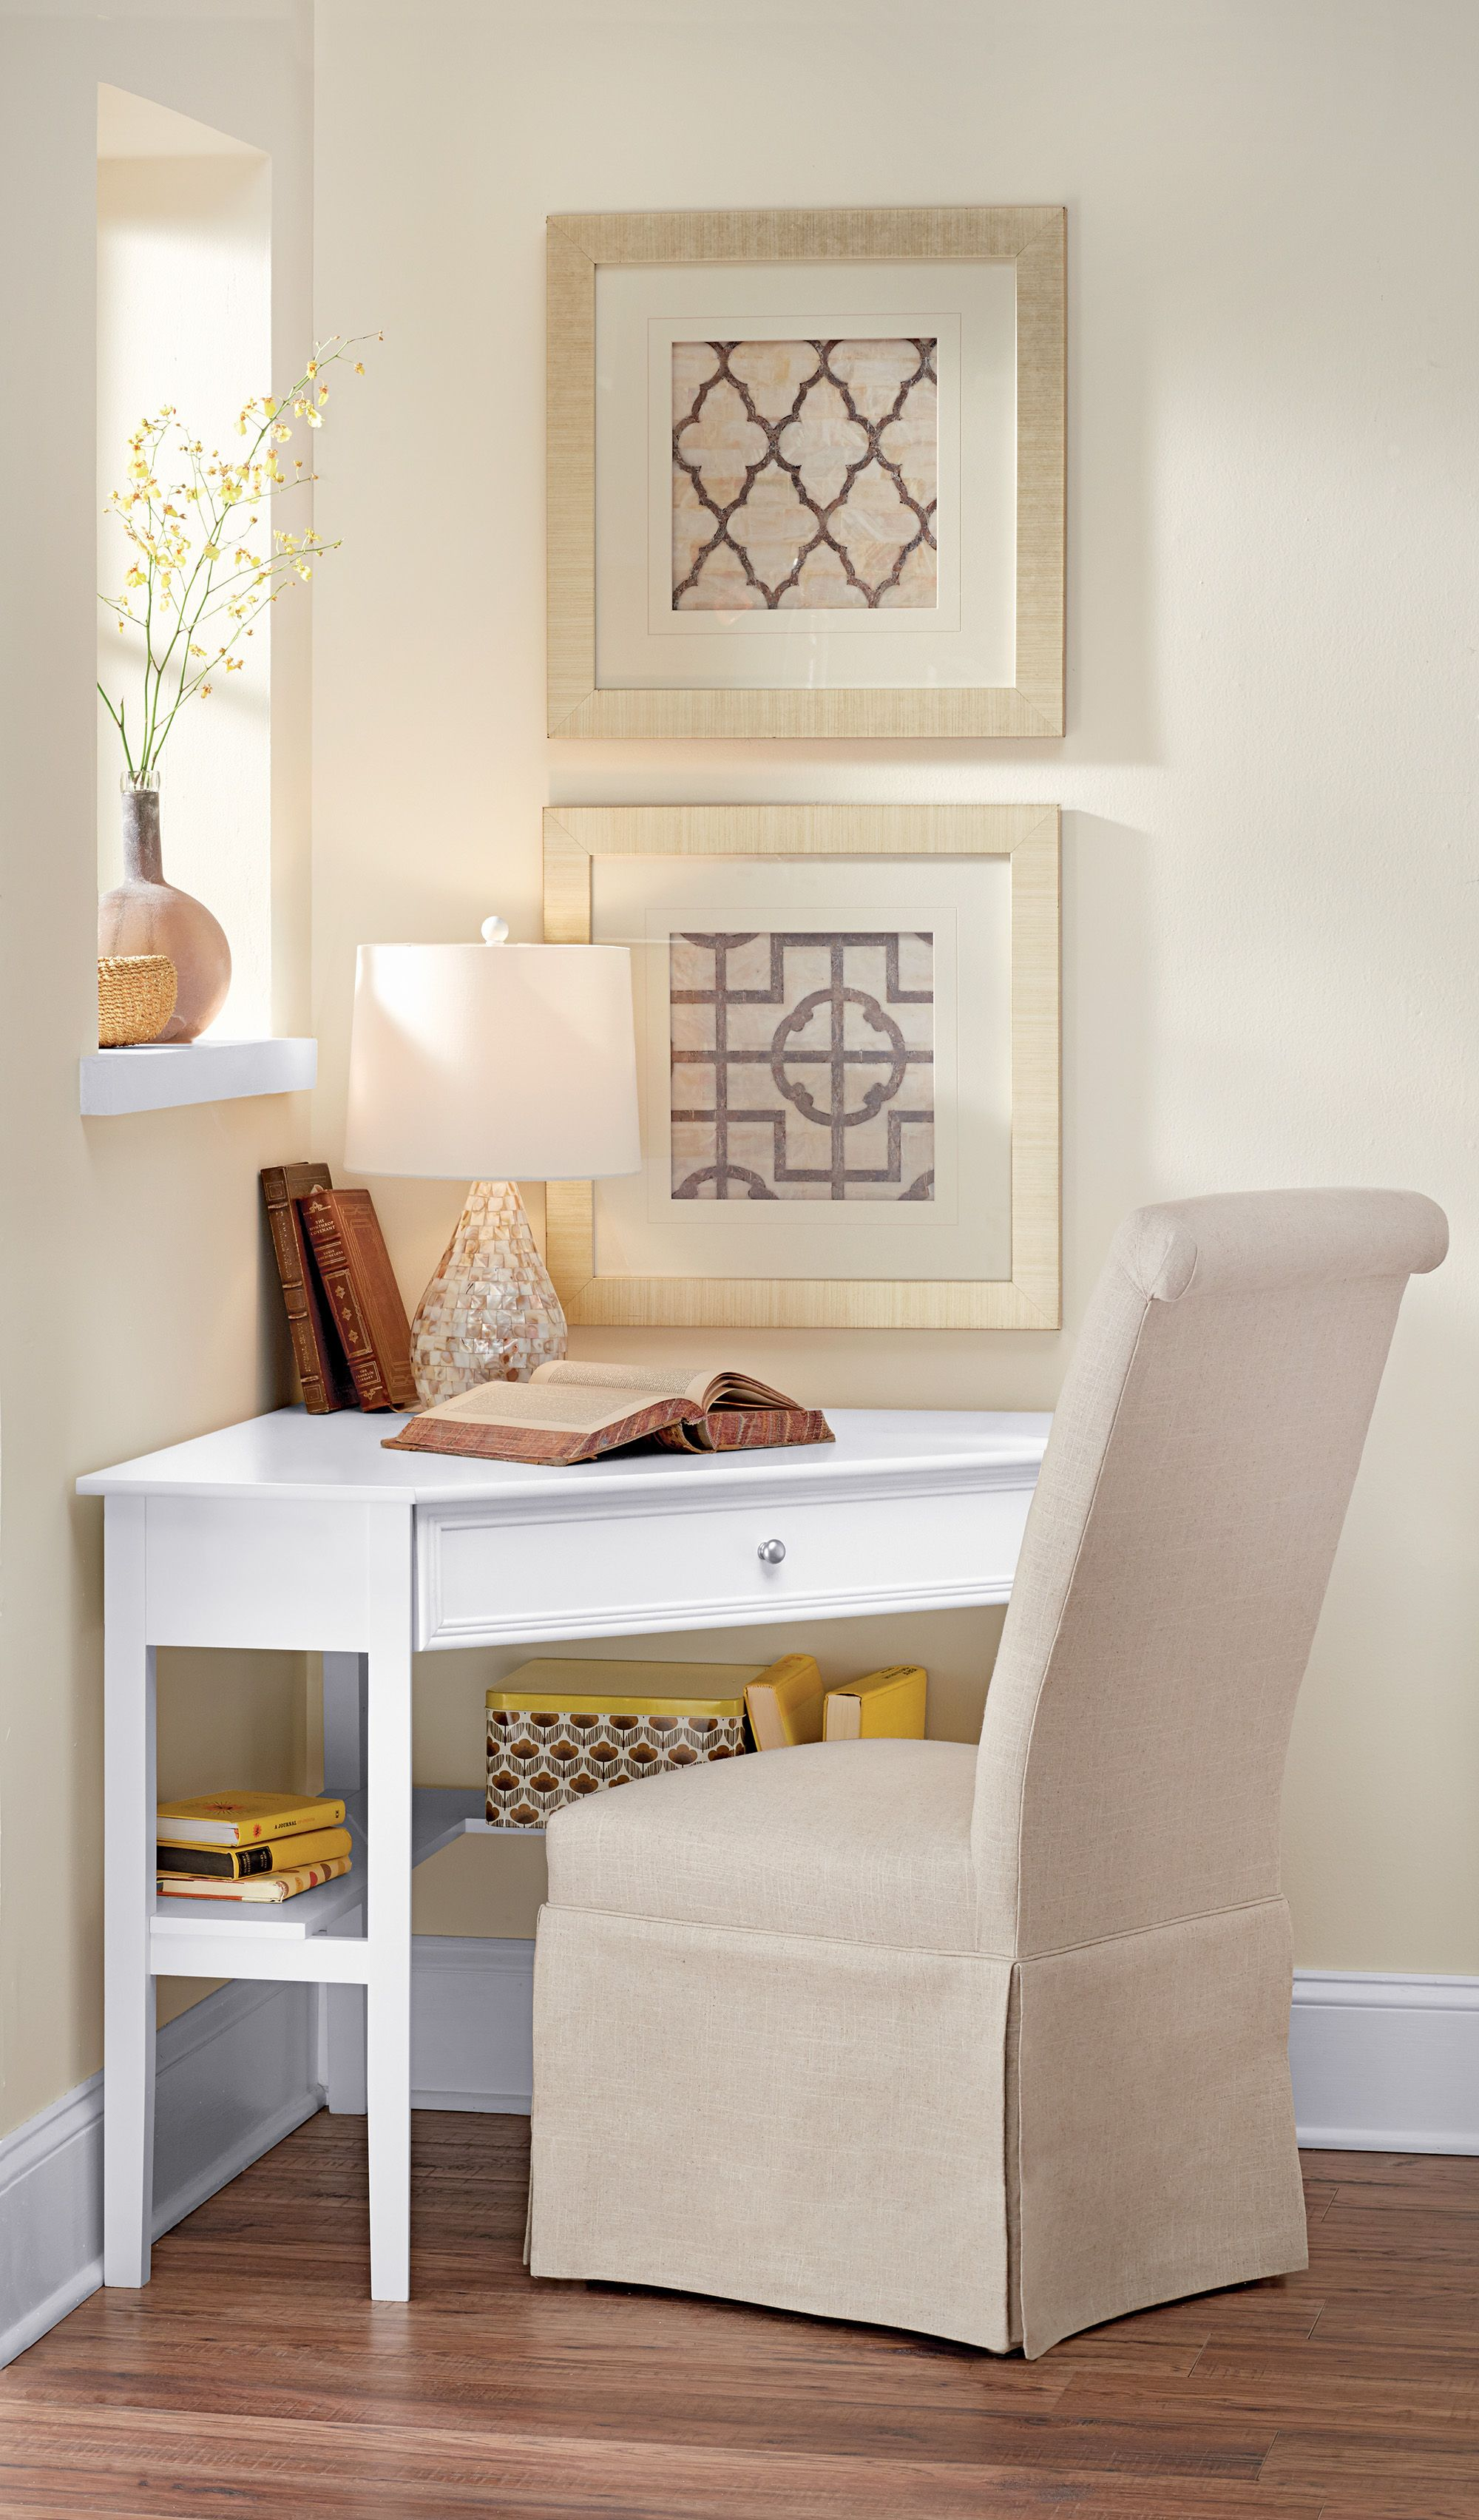 Oxford White Desk Home Office Small Corner